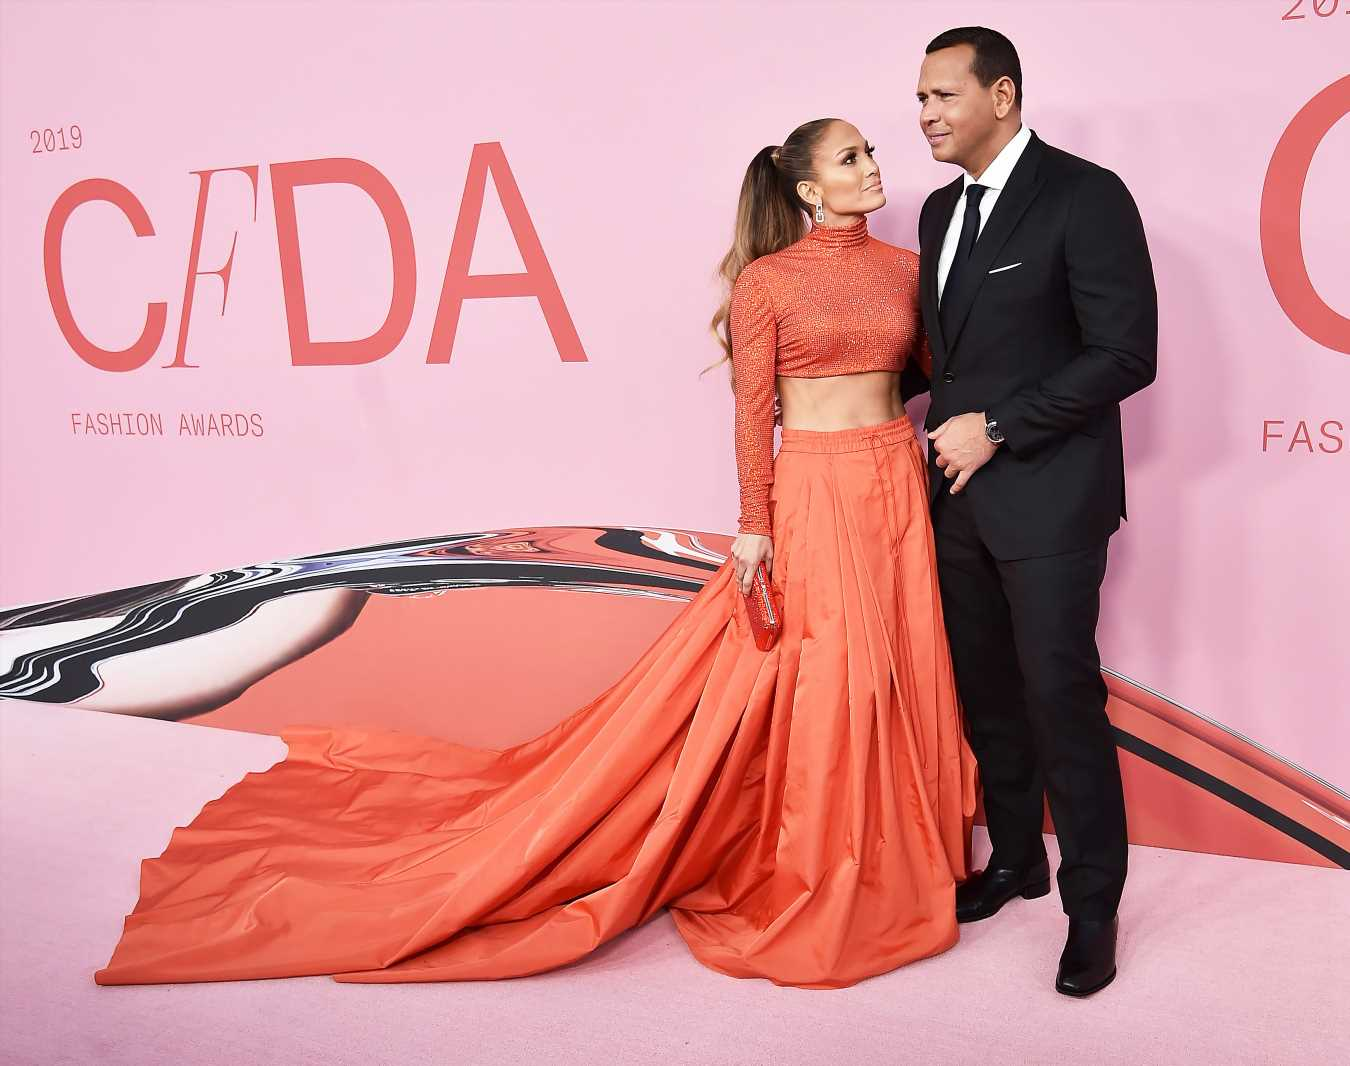 Jennifer Lopez Thinks Alex Rodriguez Looks Sexiest in a Suit: 'It's One of the Things I Loved When I First Met Him!'